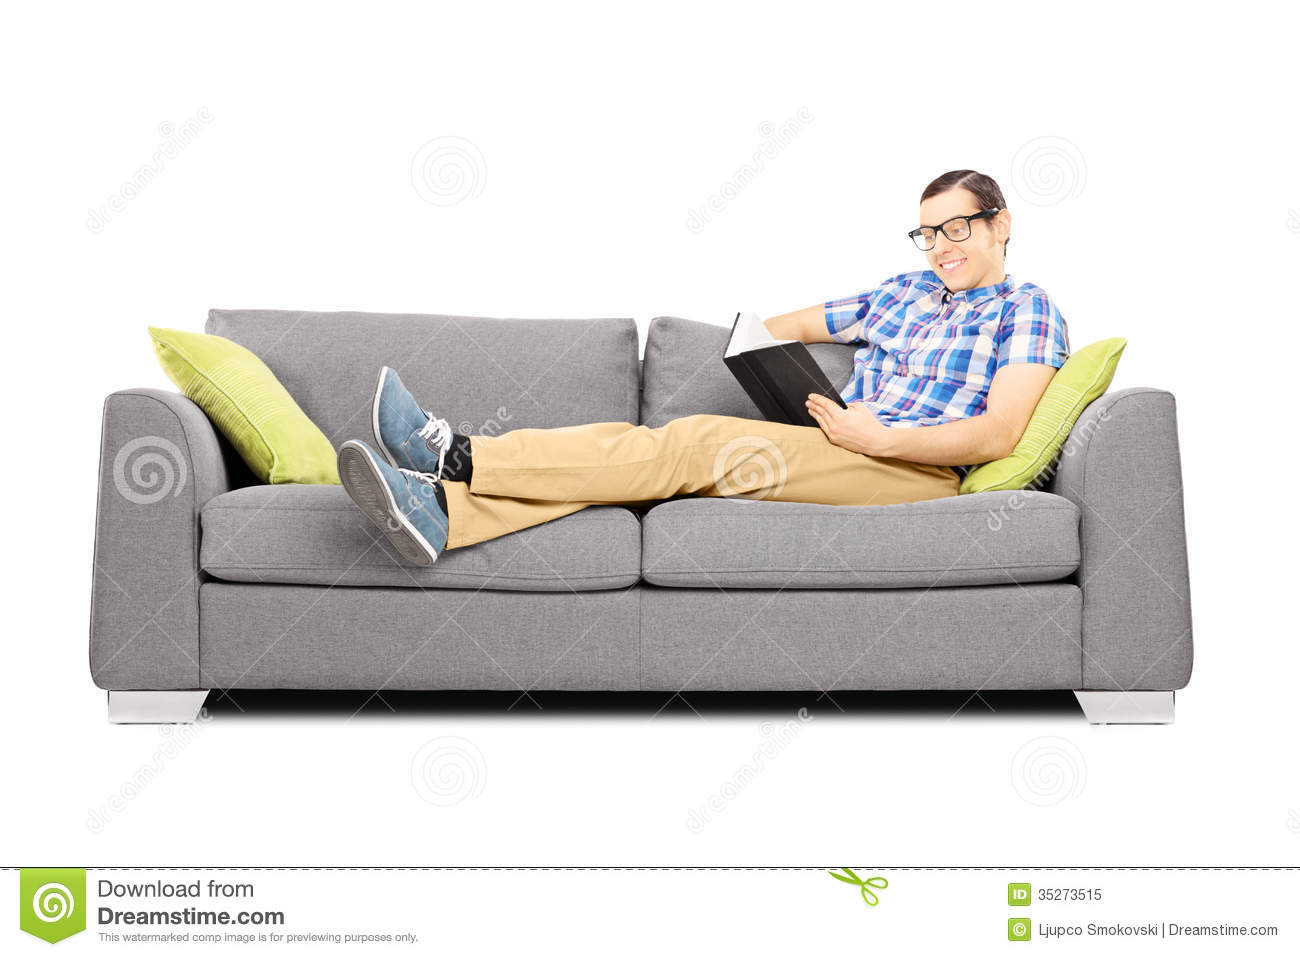 Reading Sofas : Young Male On A Sofa Reading A Book Royalty Free Stock Photo - Image ...